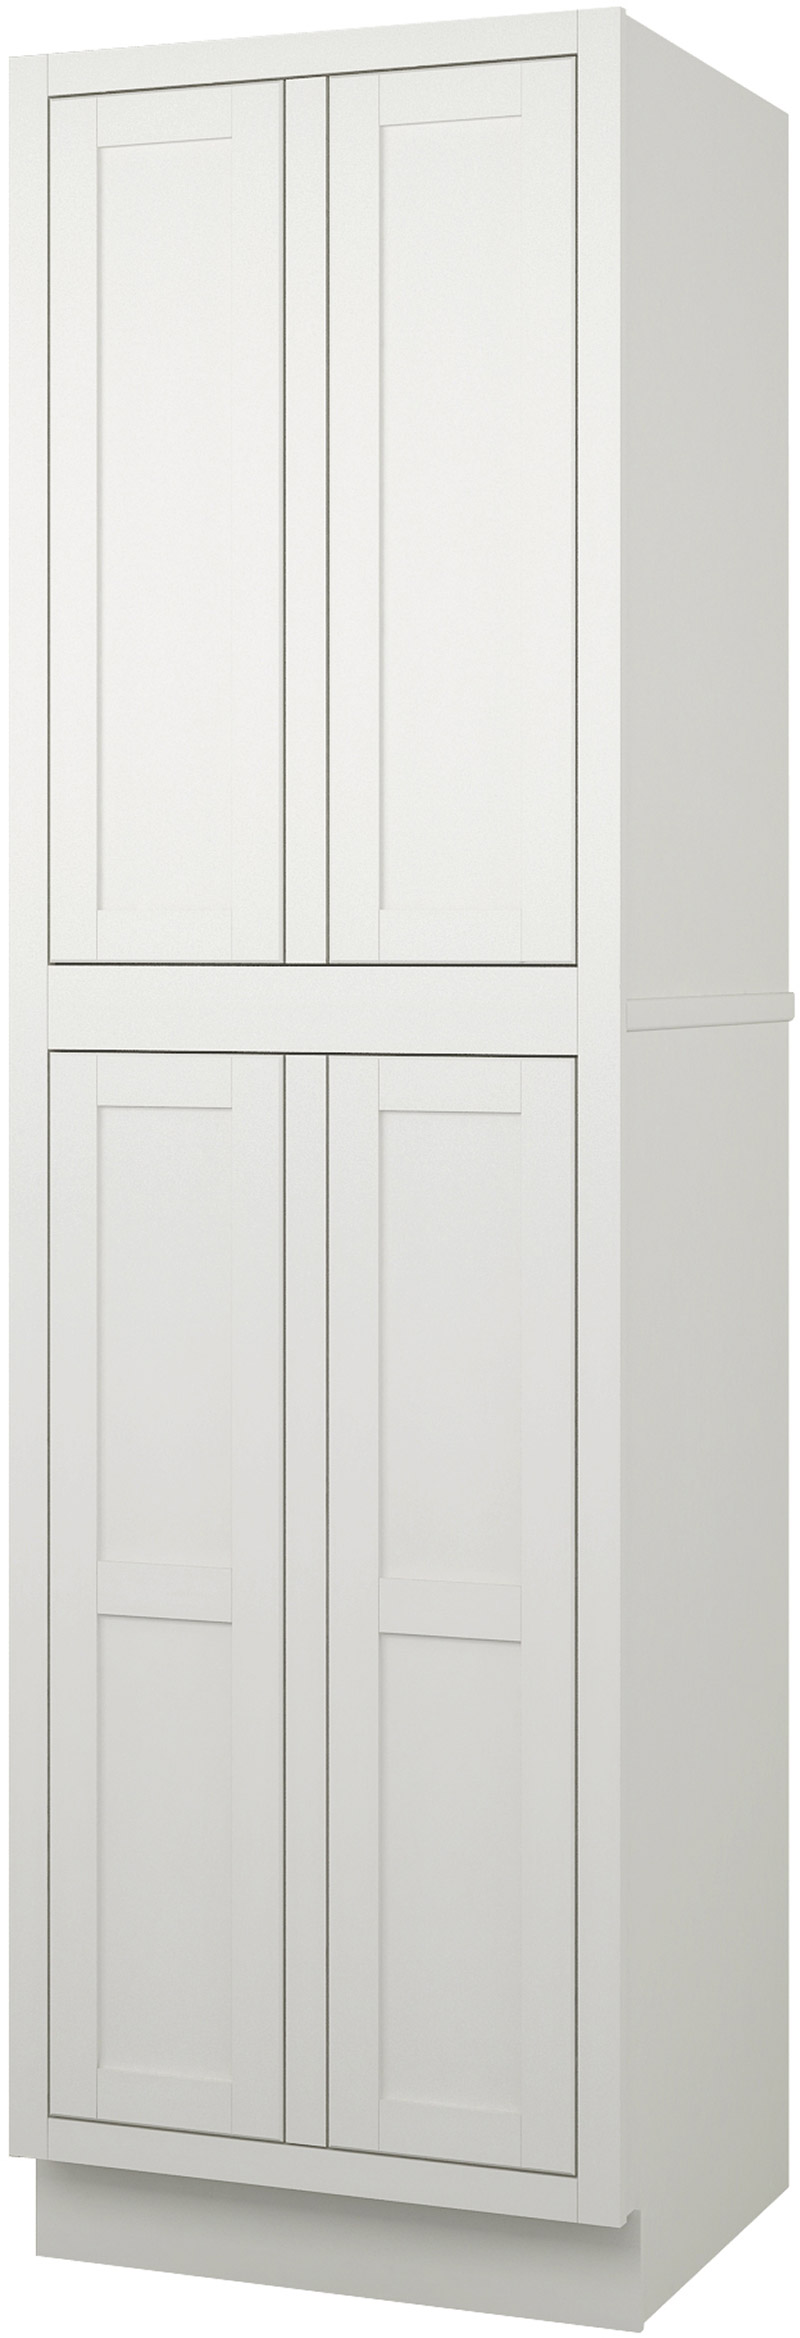 full walmart size unfinished home pantry kitchen cabinet storage big design depot lots of plans freestanding